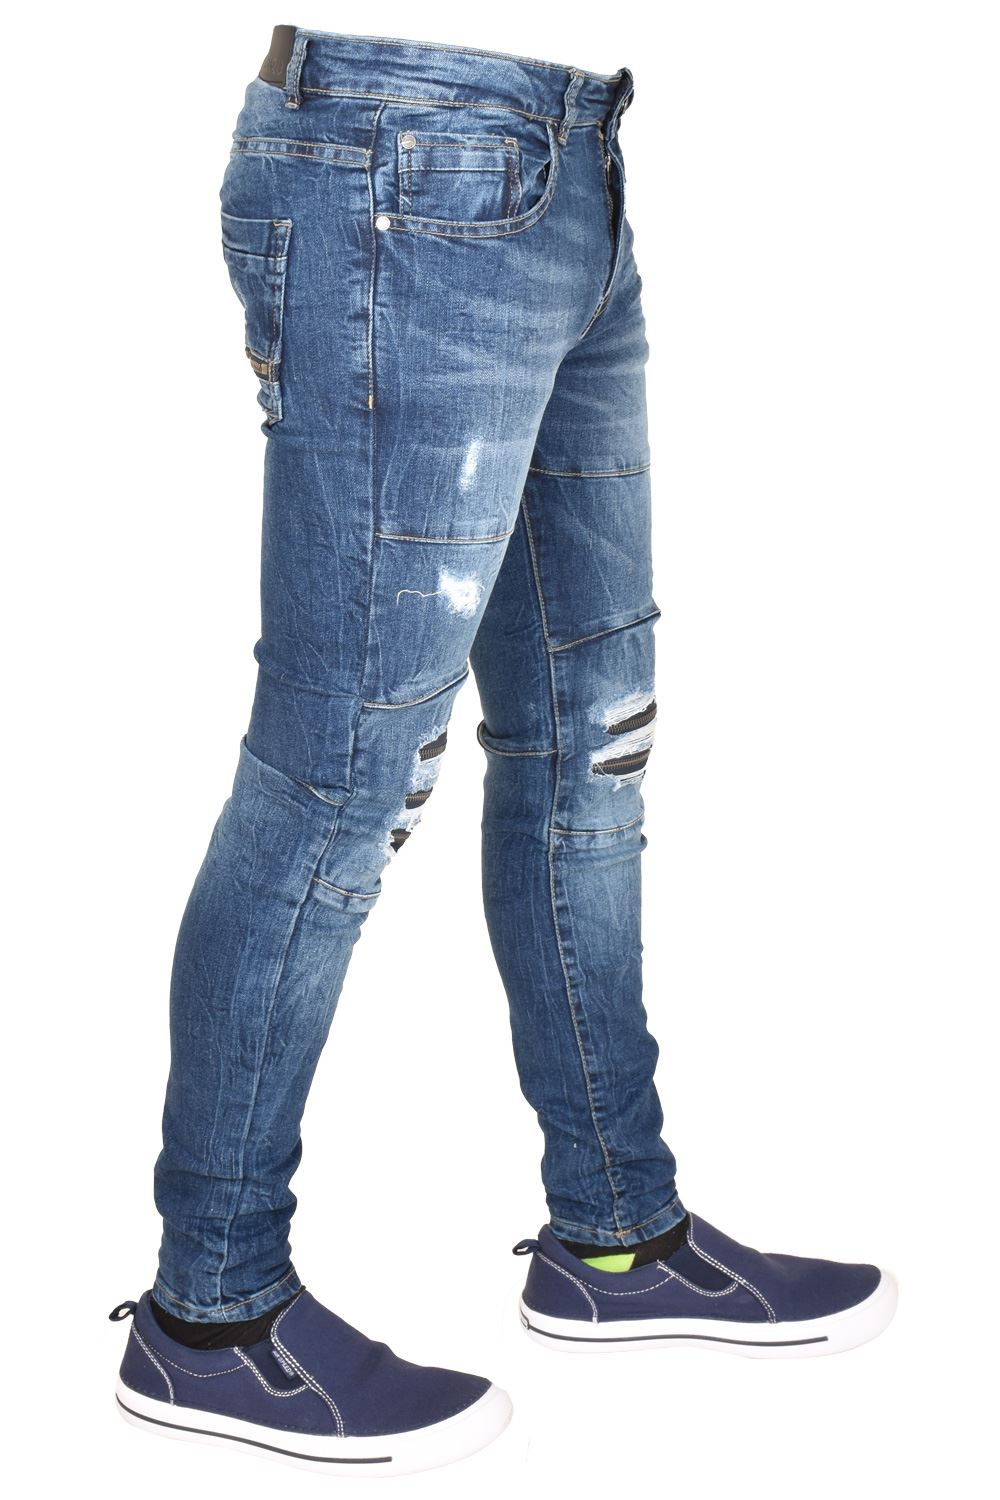 Enzo-Mens-Ripped-Jeans-Skinny-Slim-Fit-Denim-Pants-Casual-Trousers-Size-28-40 thumbnail 10